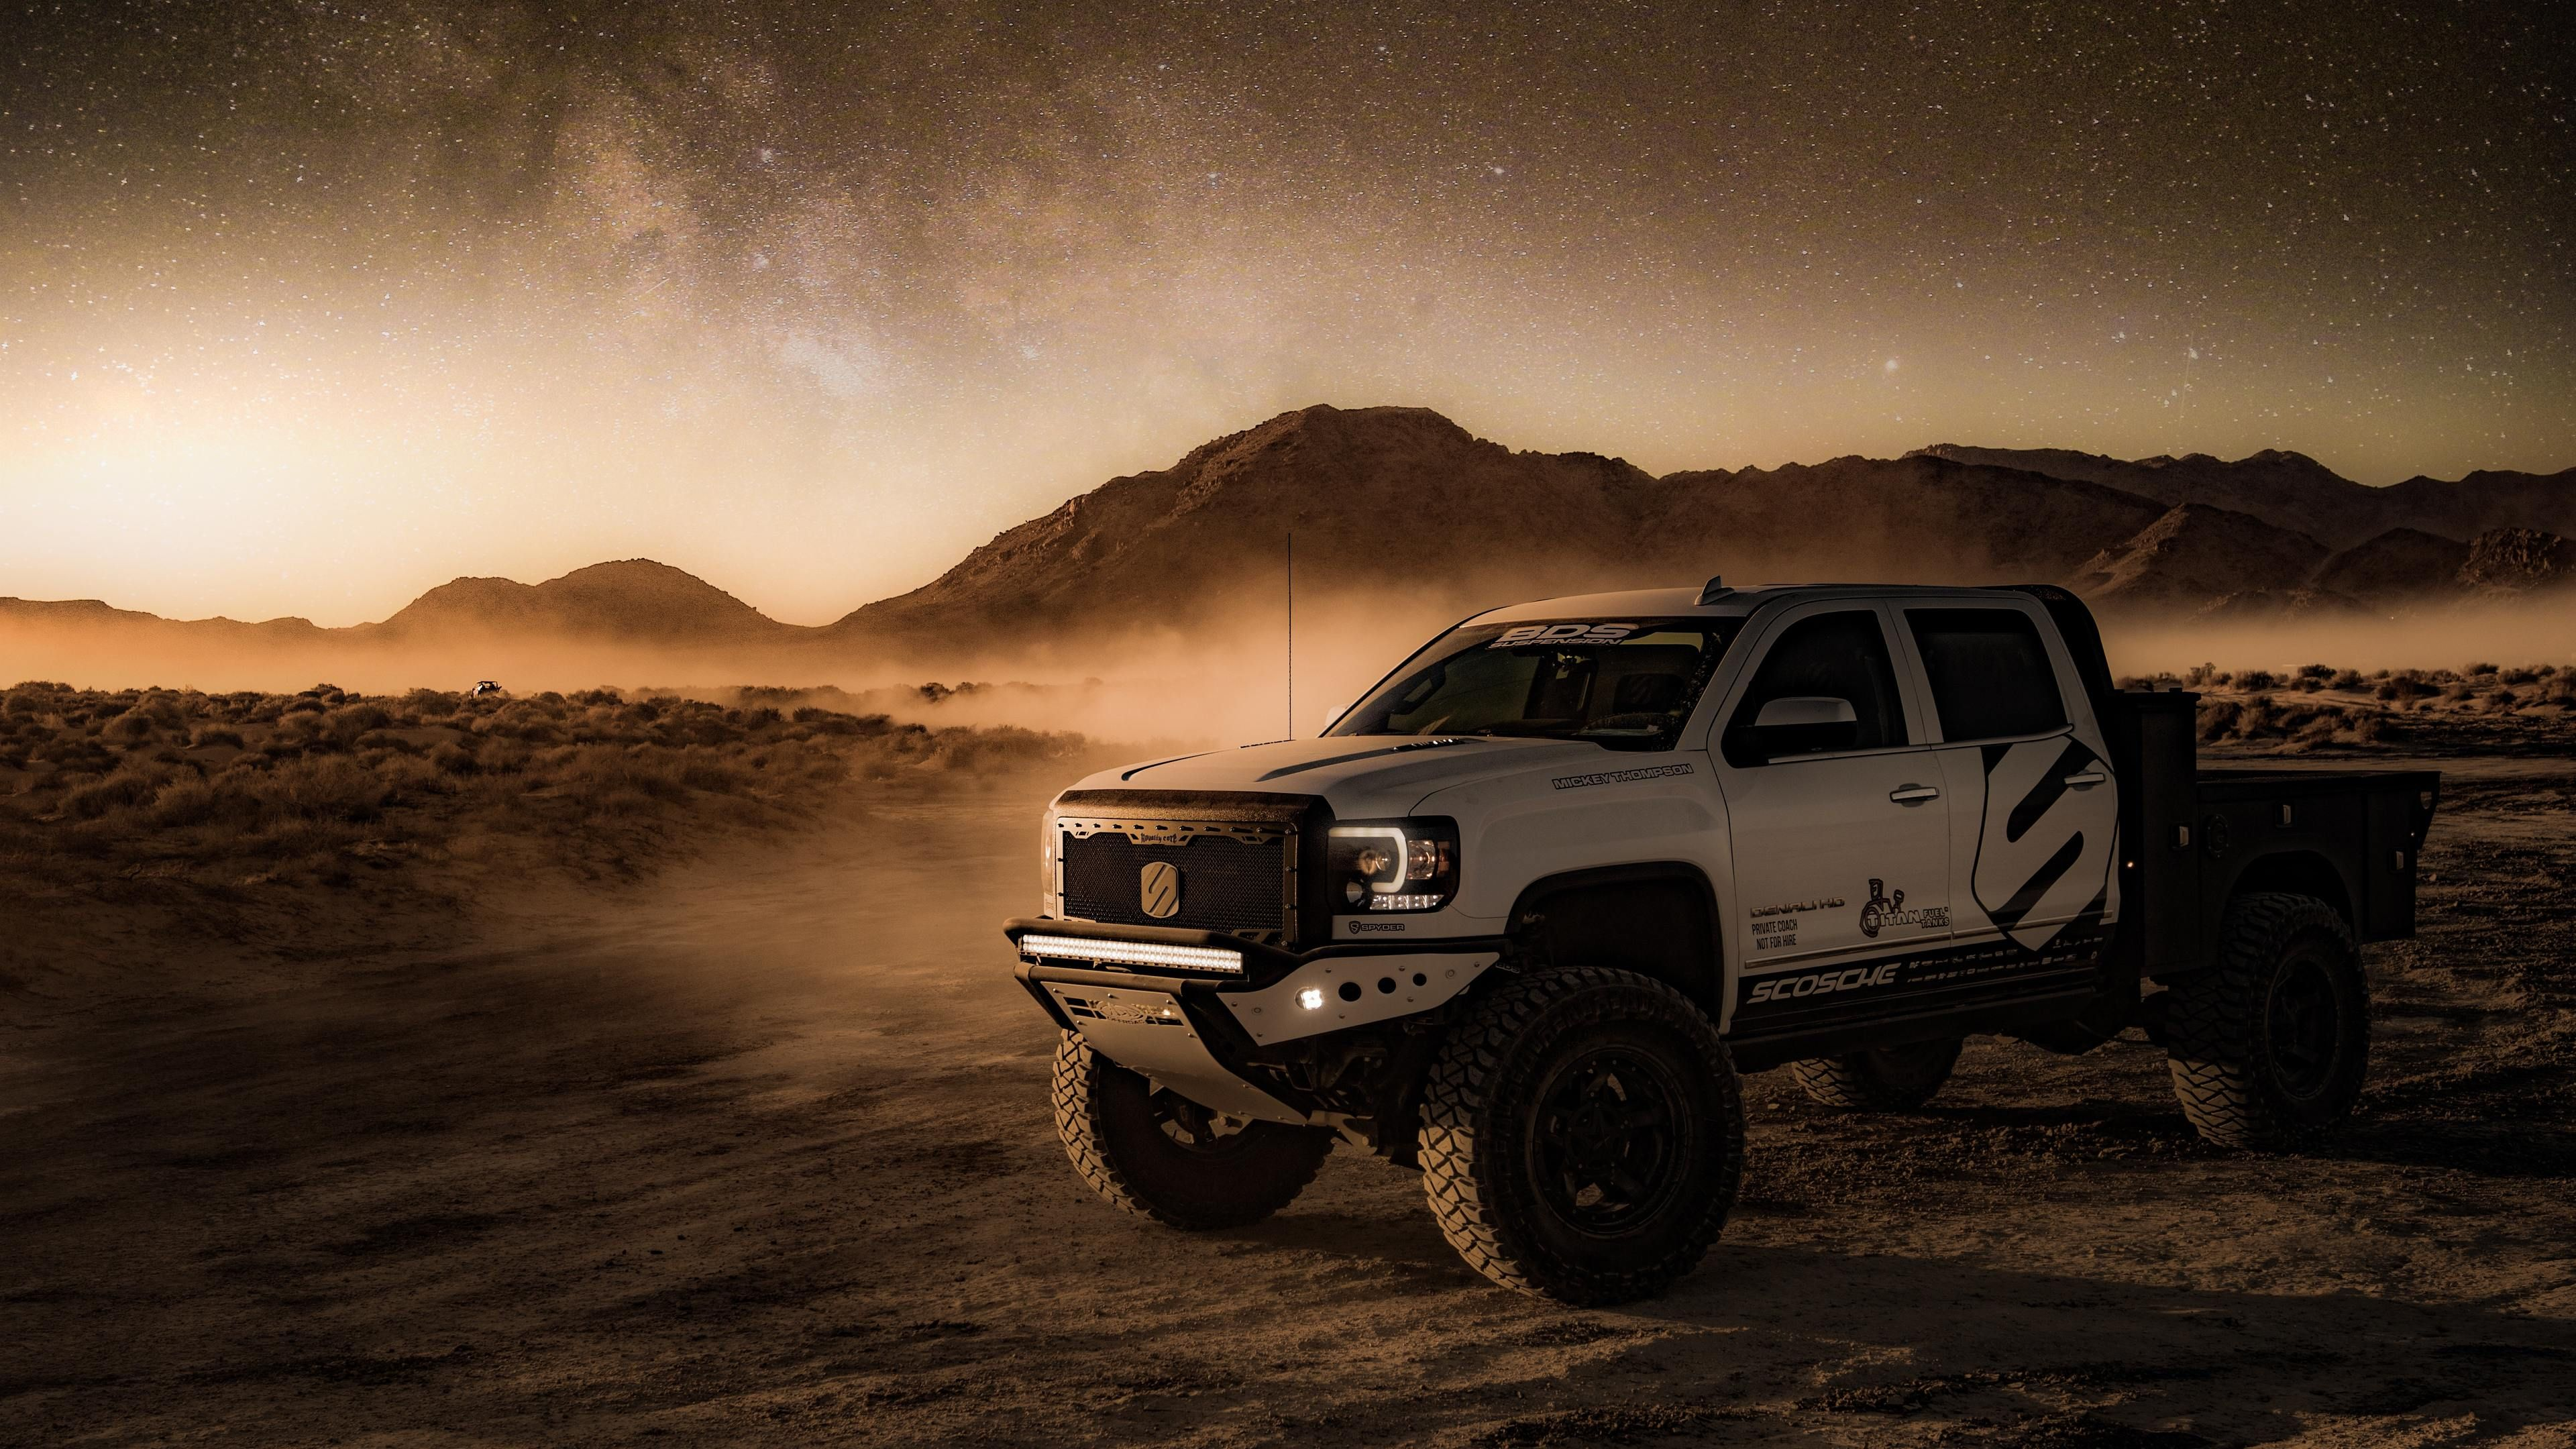 4x4 Offroad Vehicle In Desert Offroading Wallpapers, Hd